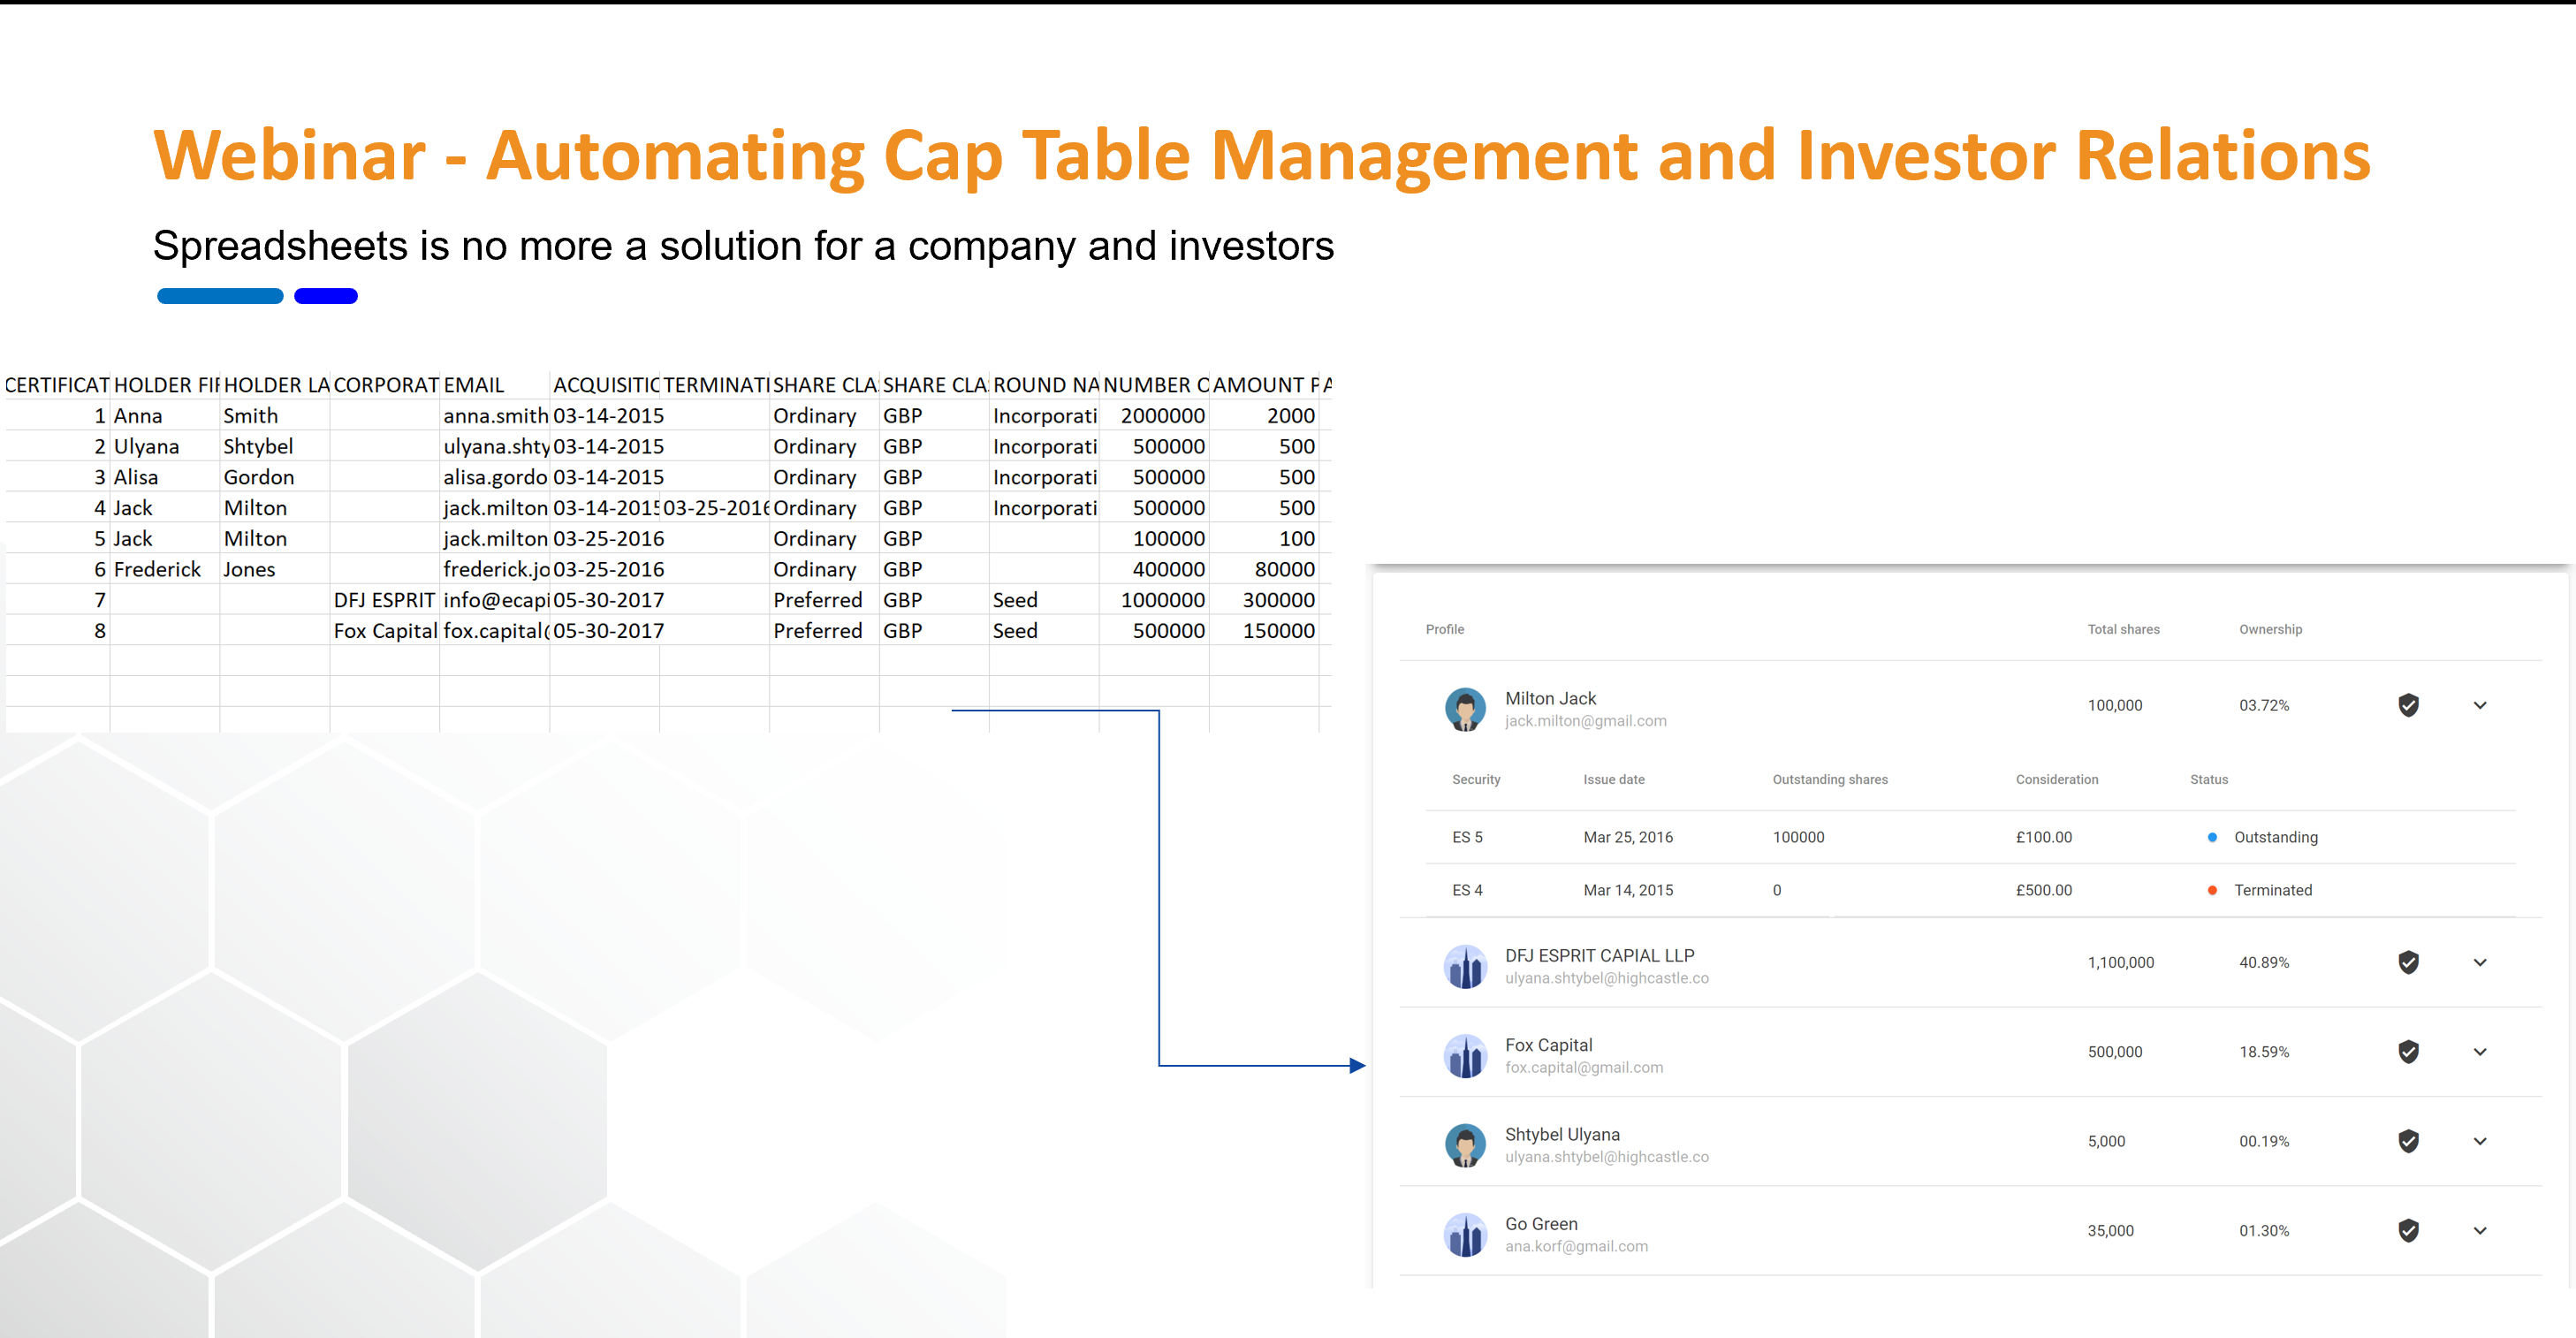 Weekly Webinars - Automating Cap Table Management and Investor Relations